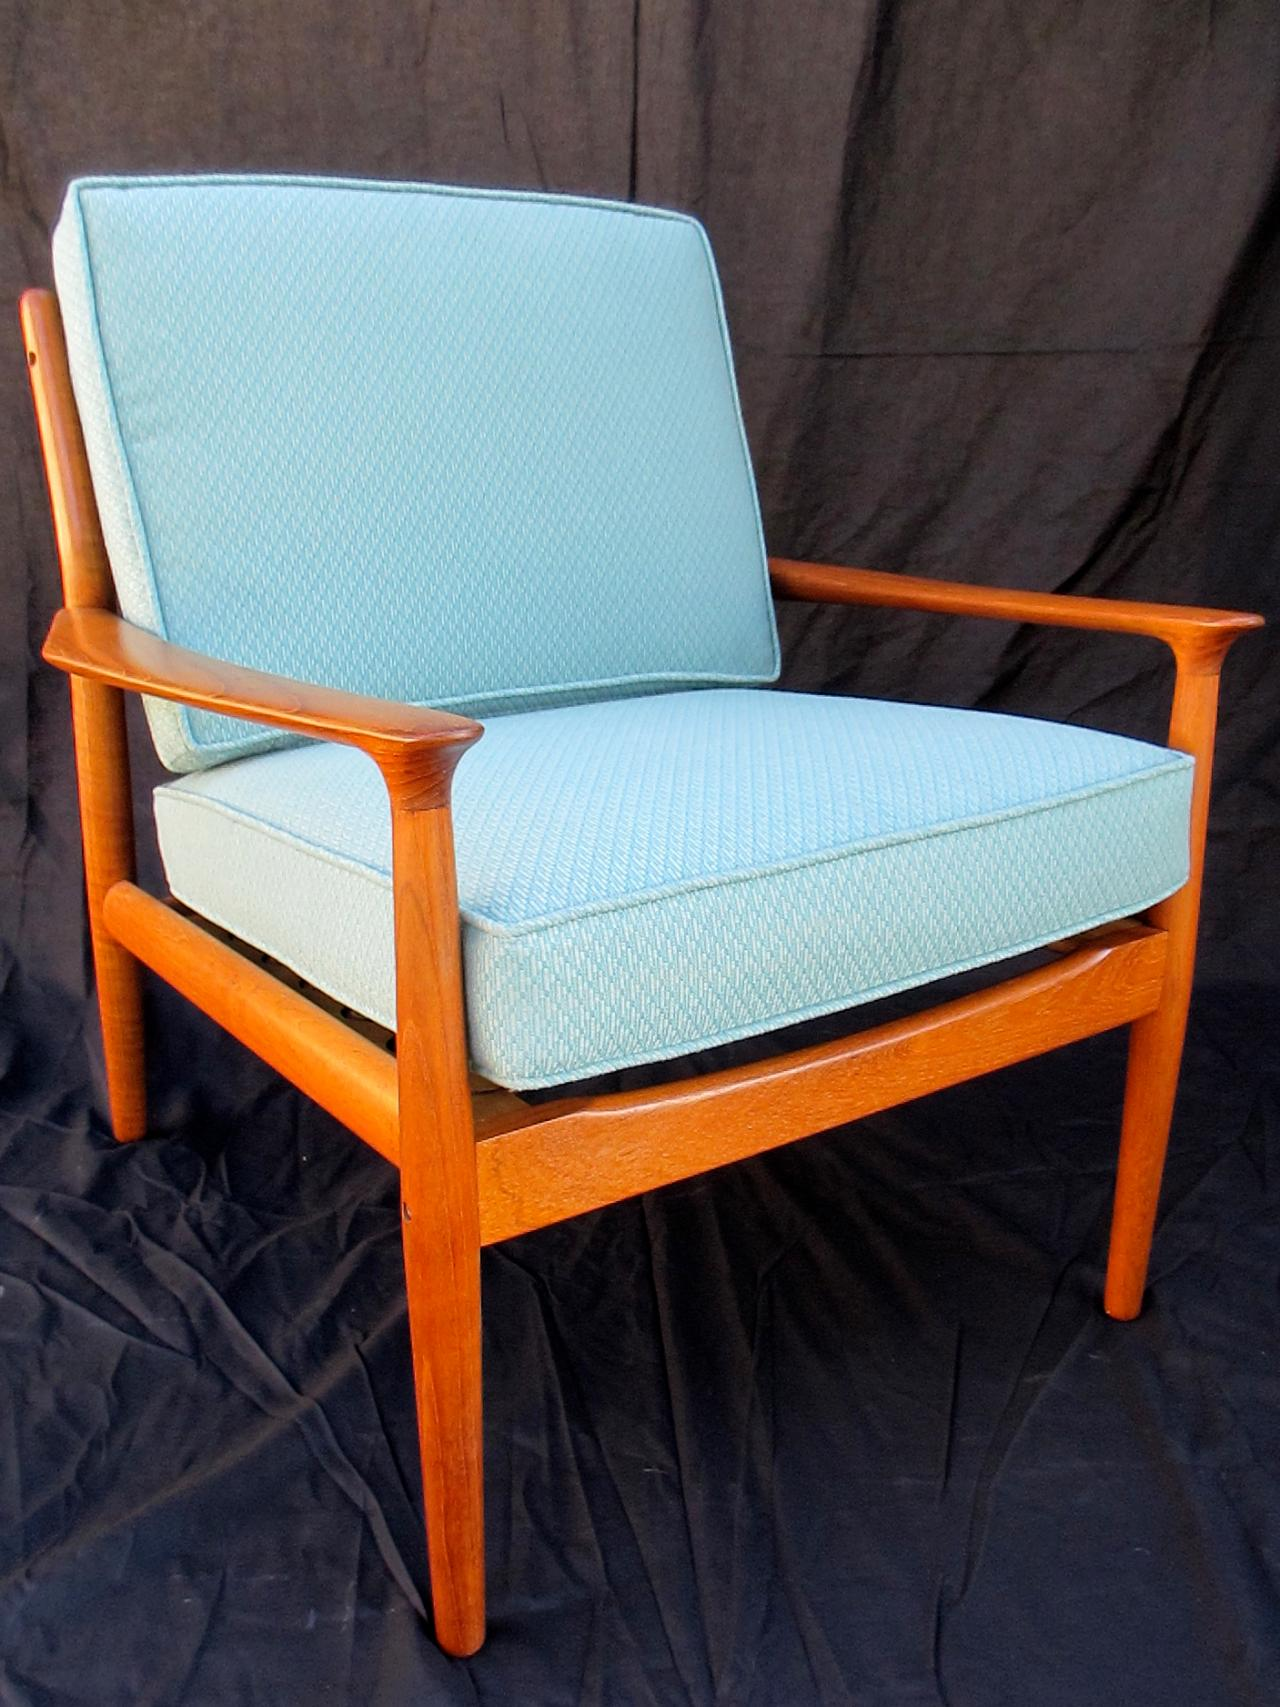 Original mid century mod chair after s3x4